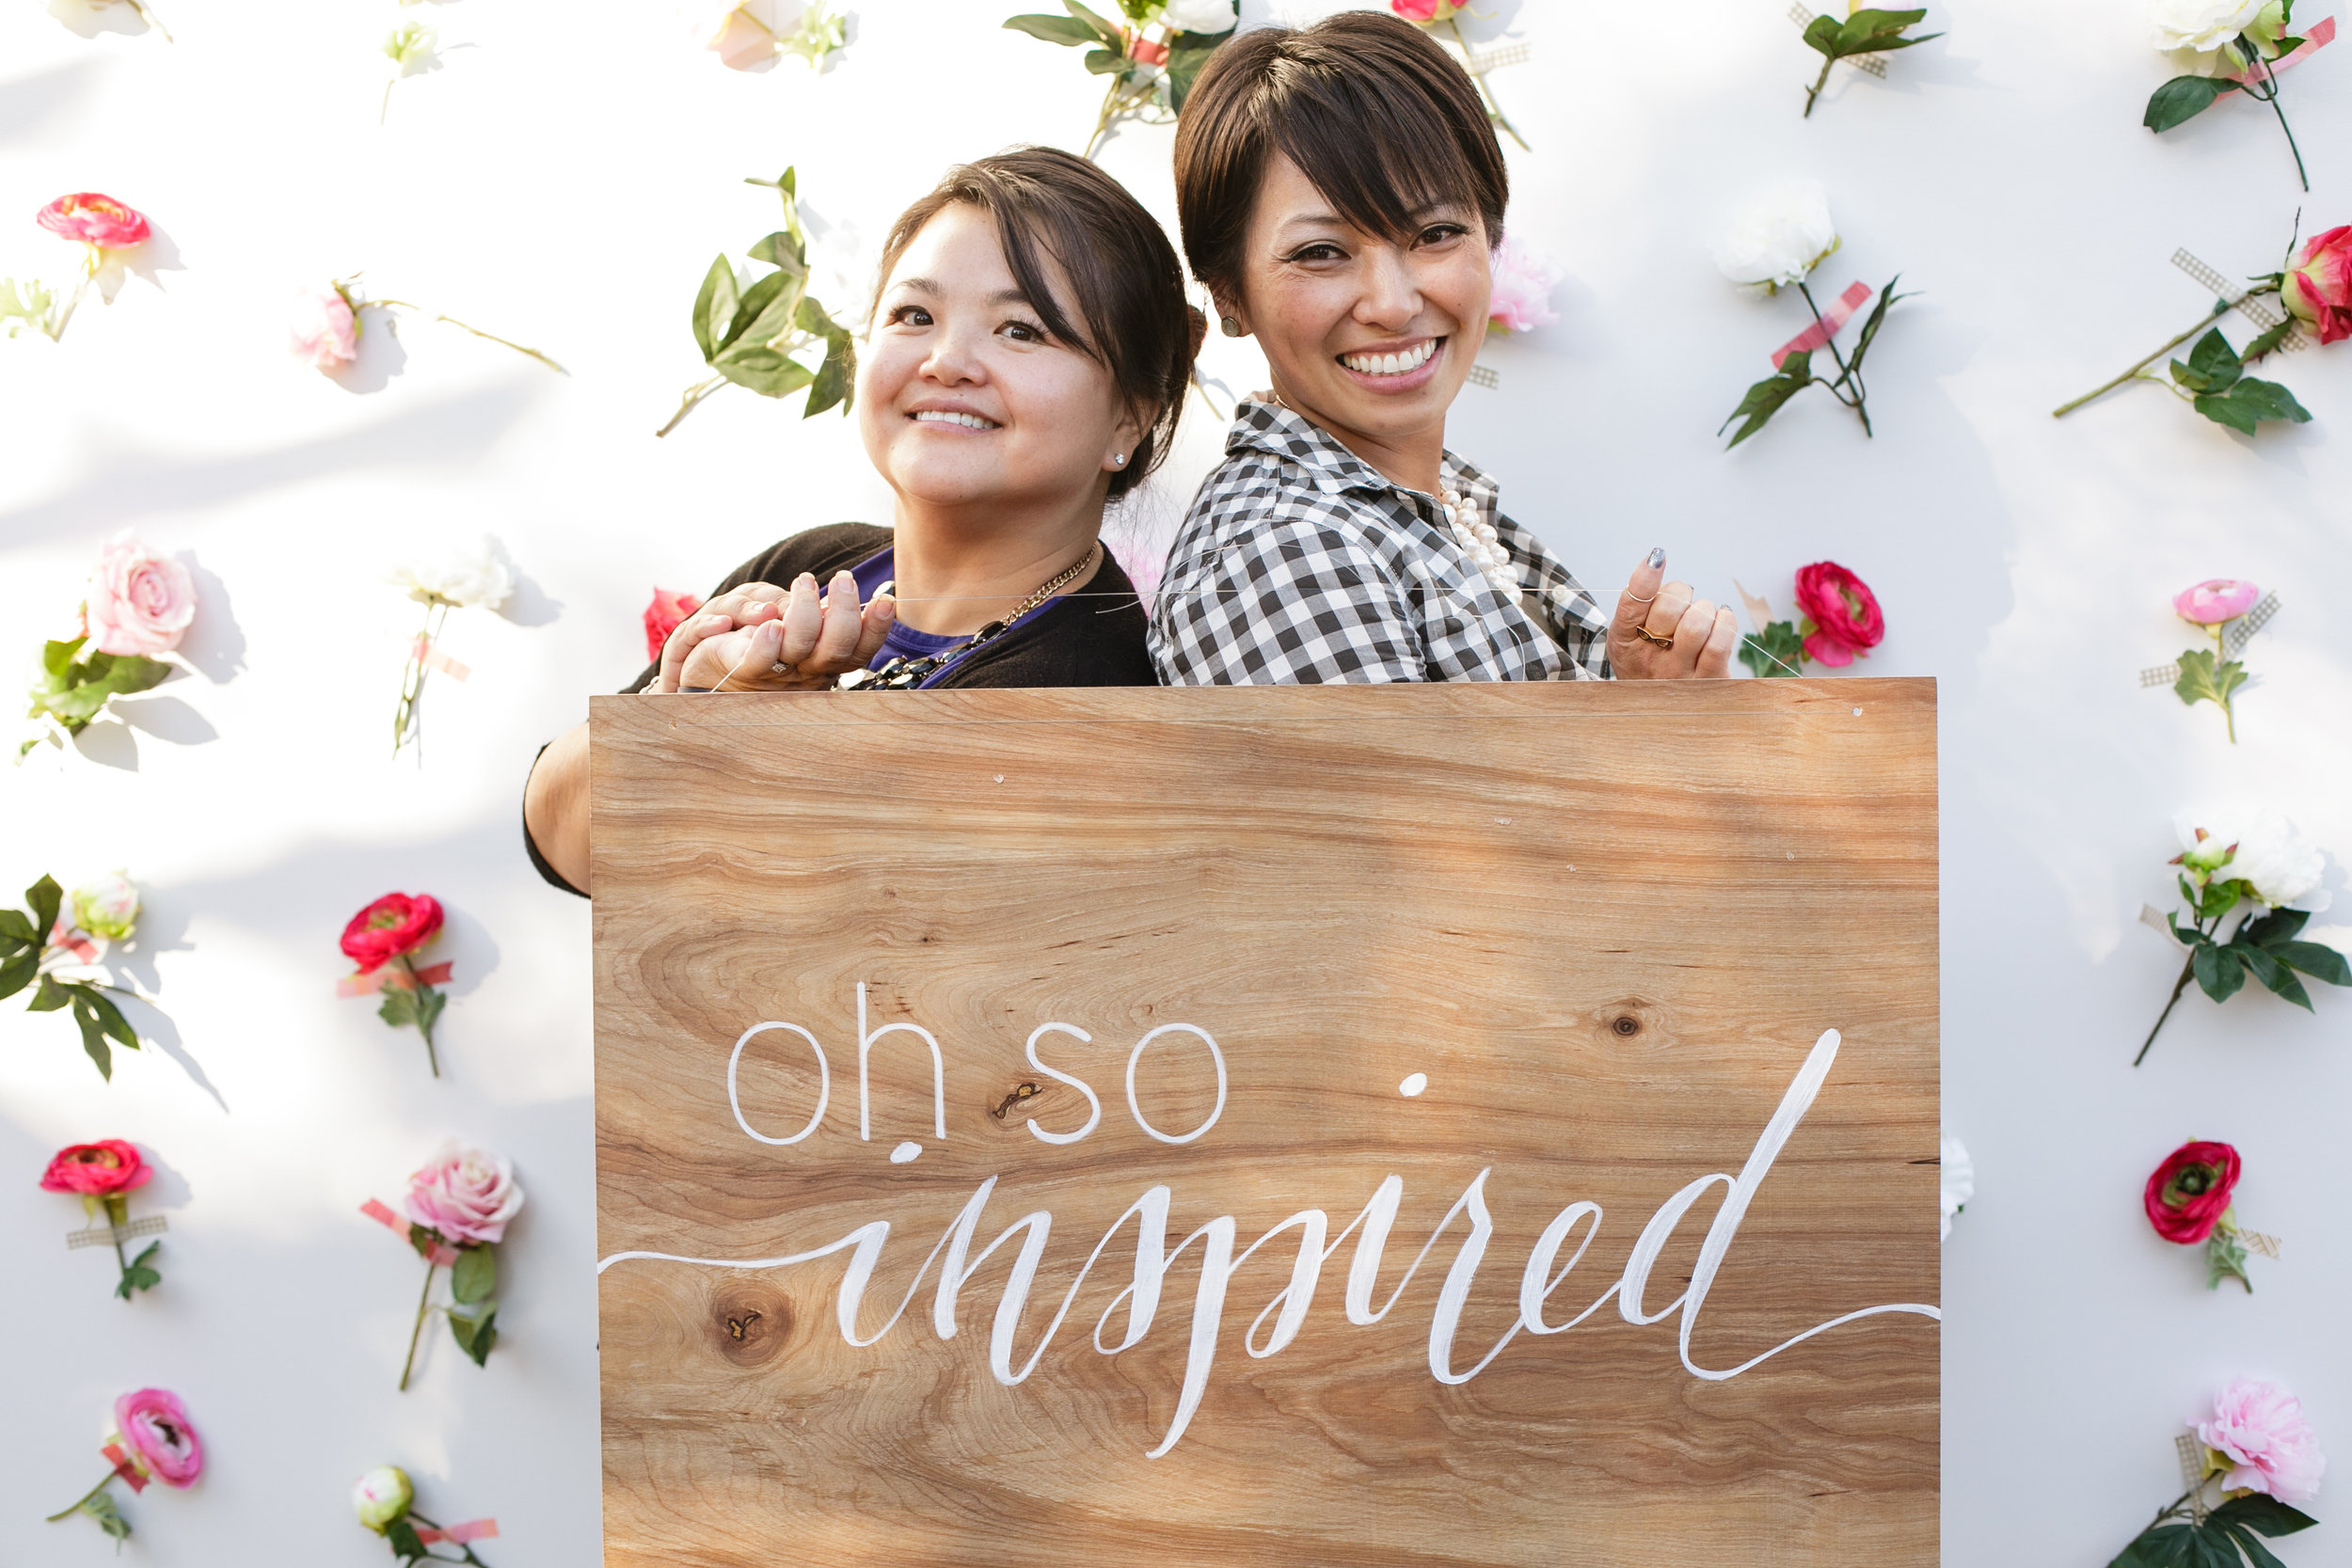 Oh So Inspired retreat in Sonoma | asavvylifestyle.com {kevin chin}